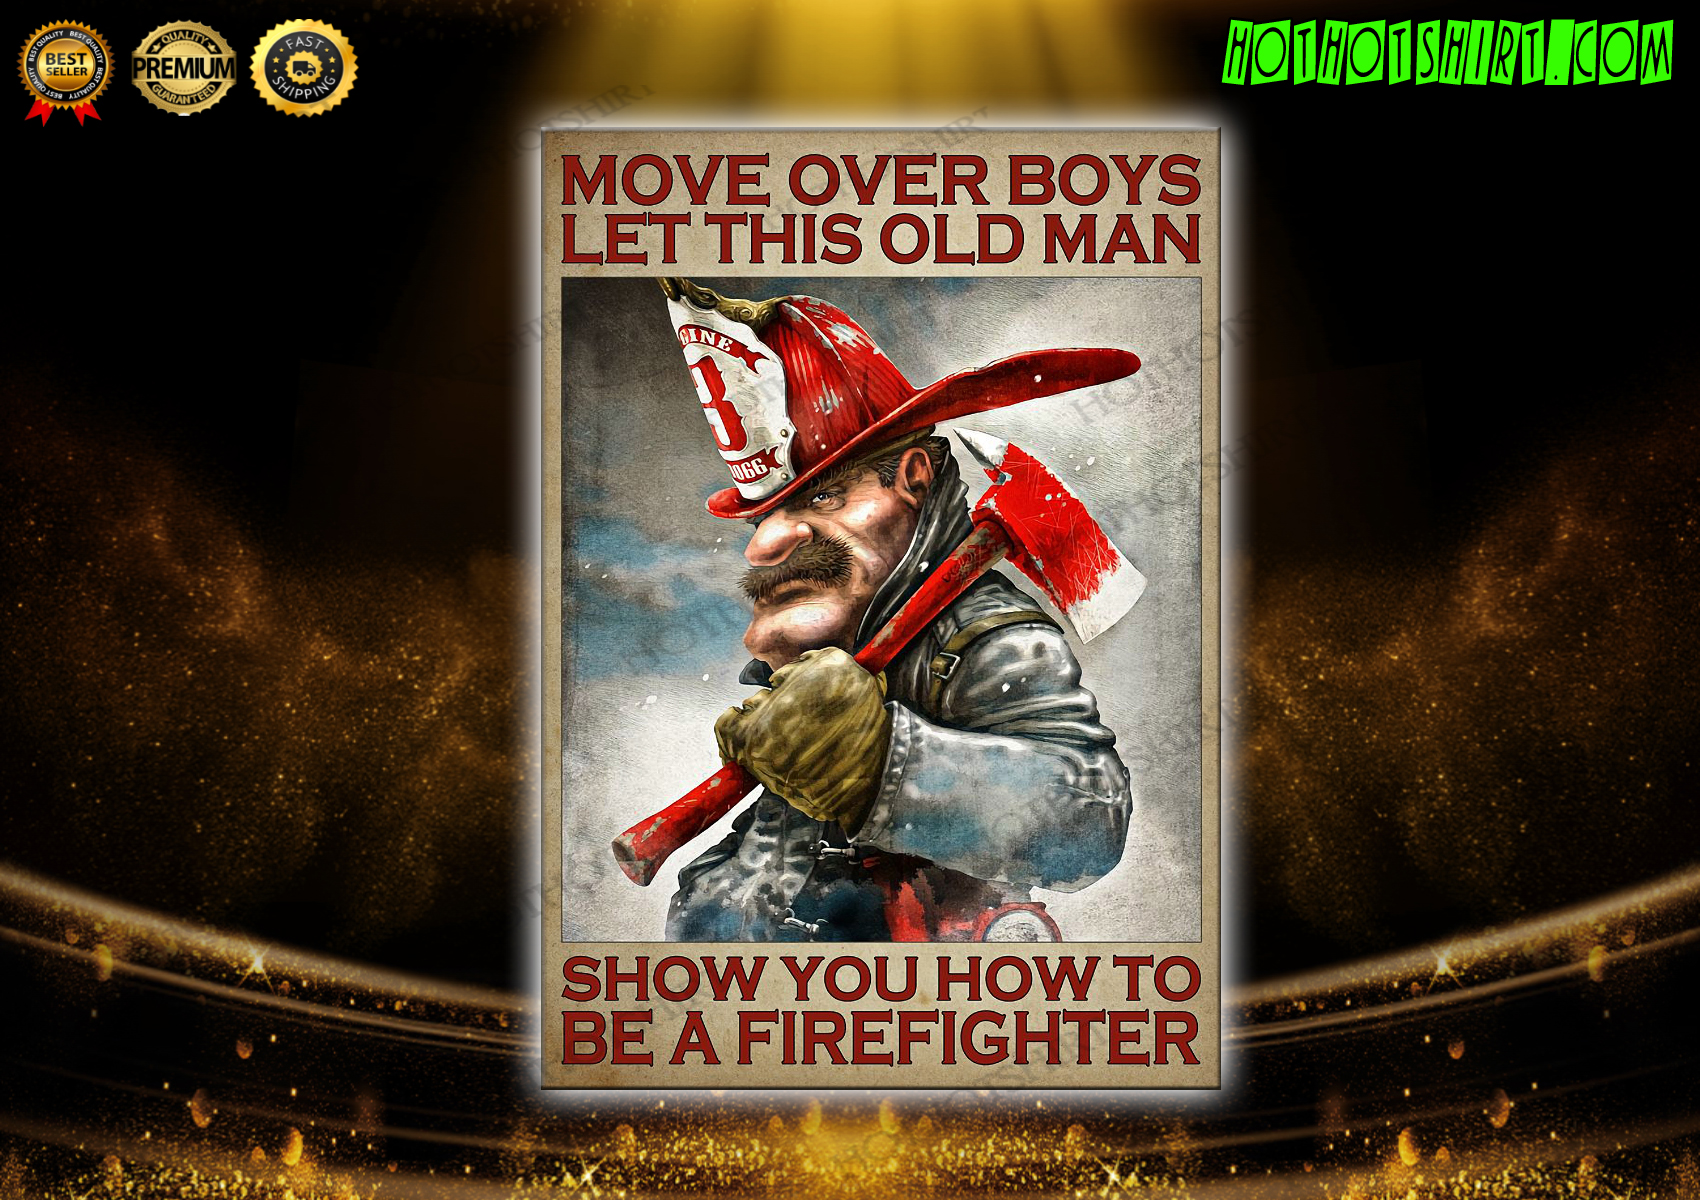 Move over boys let this old man show you how to ba a firefigher poster